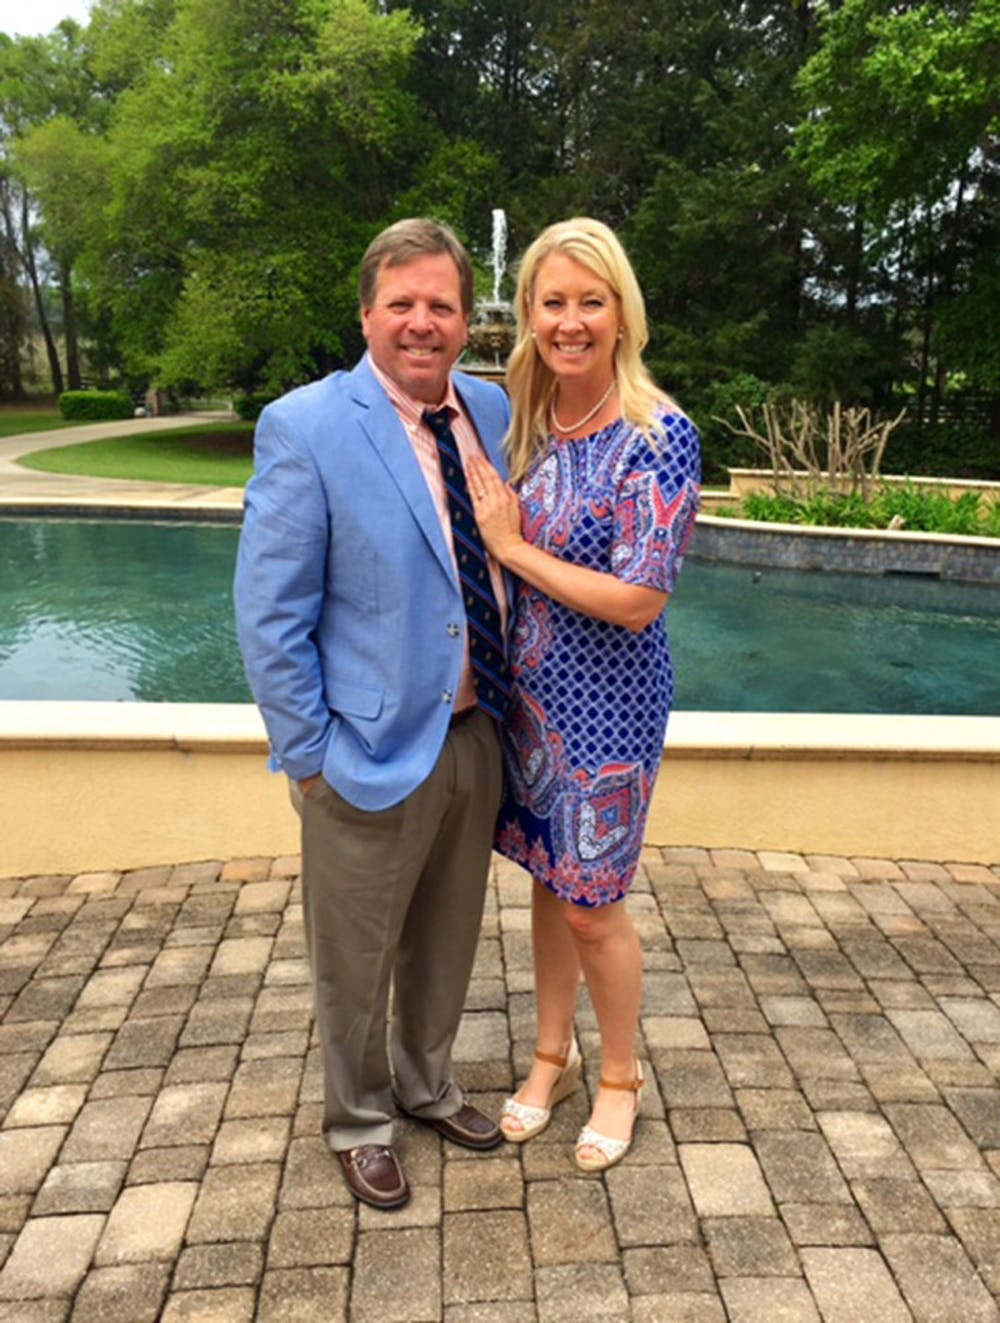 <p>Coach Jim McElwain and Karen McElwain before attending Easter Sunday service last month. The McElwains have been in Gainesville for a year now, with a 10-4 regular season record in their first season with the Gators.</p>